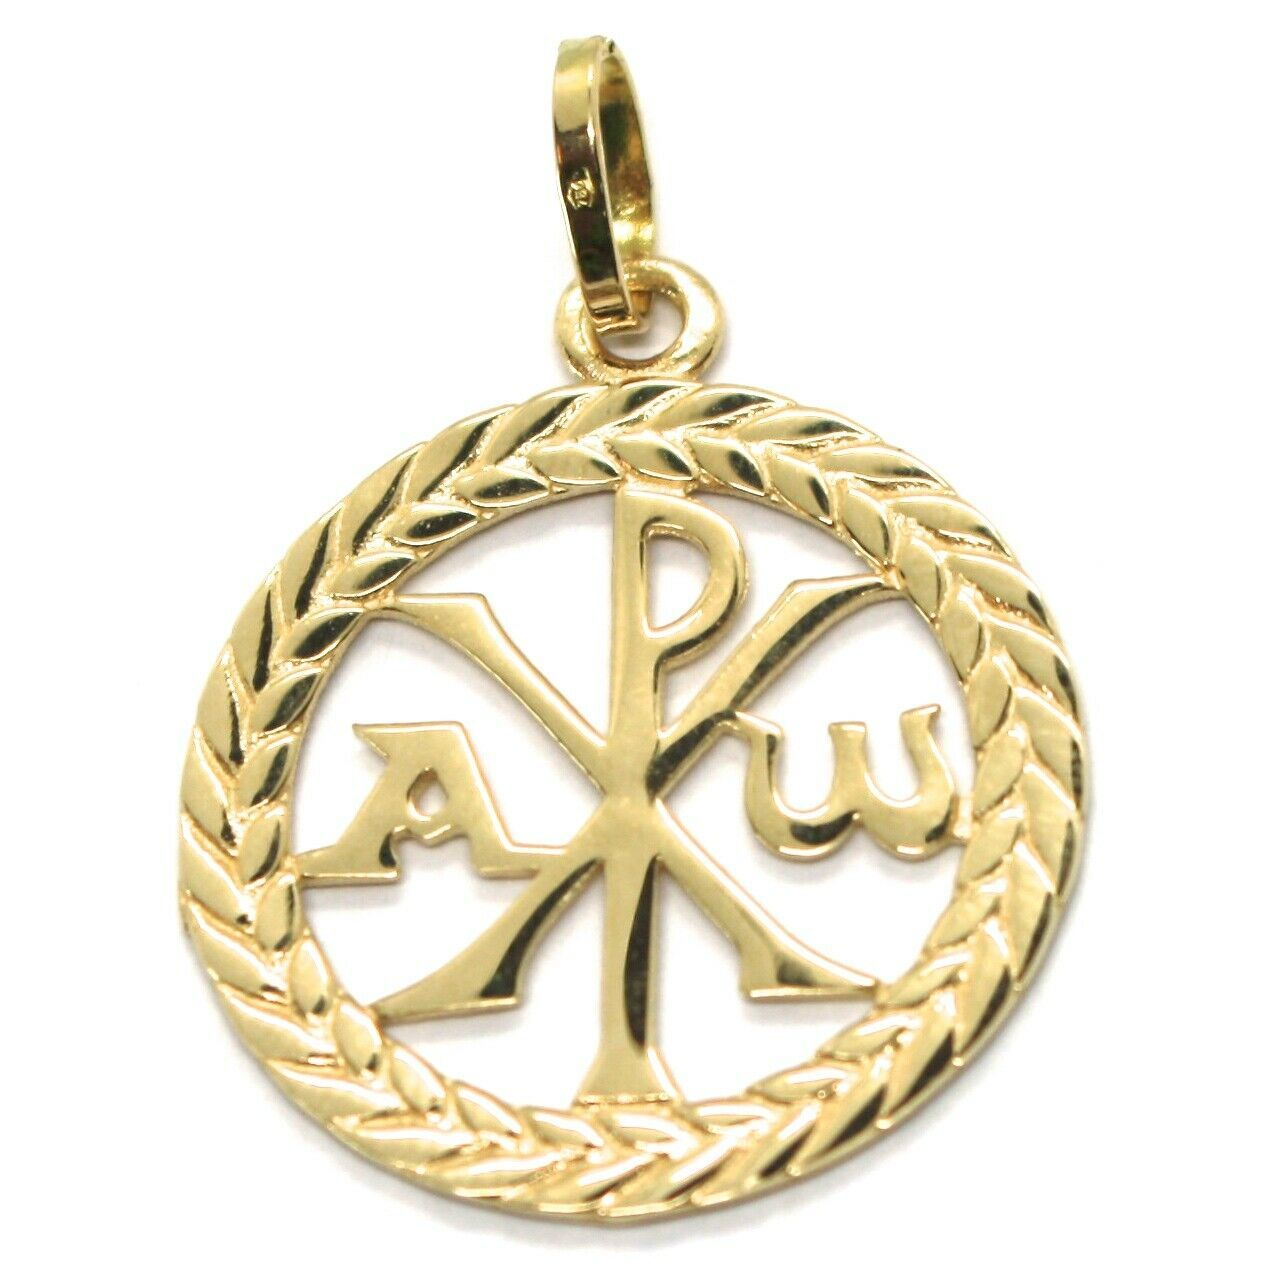 SOLID 18K YELLOW GOLD MONOGRAM OF CHRIST PENDANT, PEACE, MEDAL, 0.95 INCHES